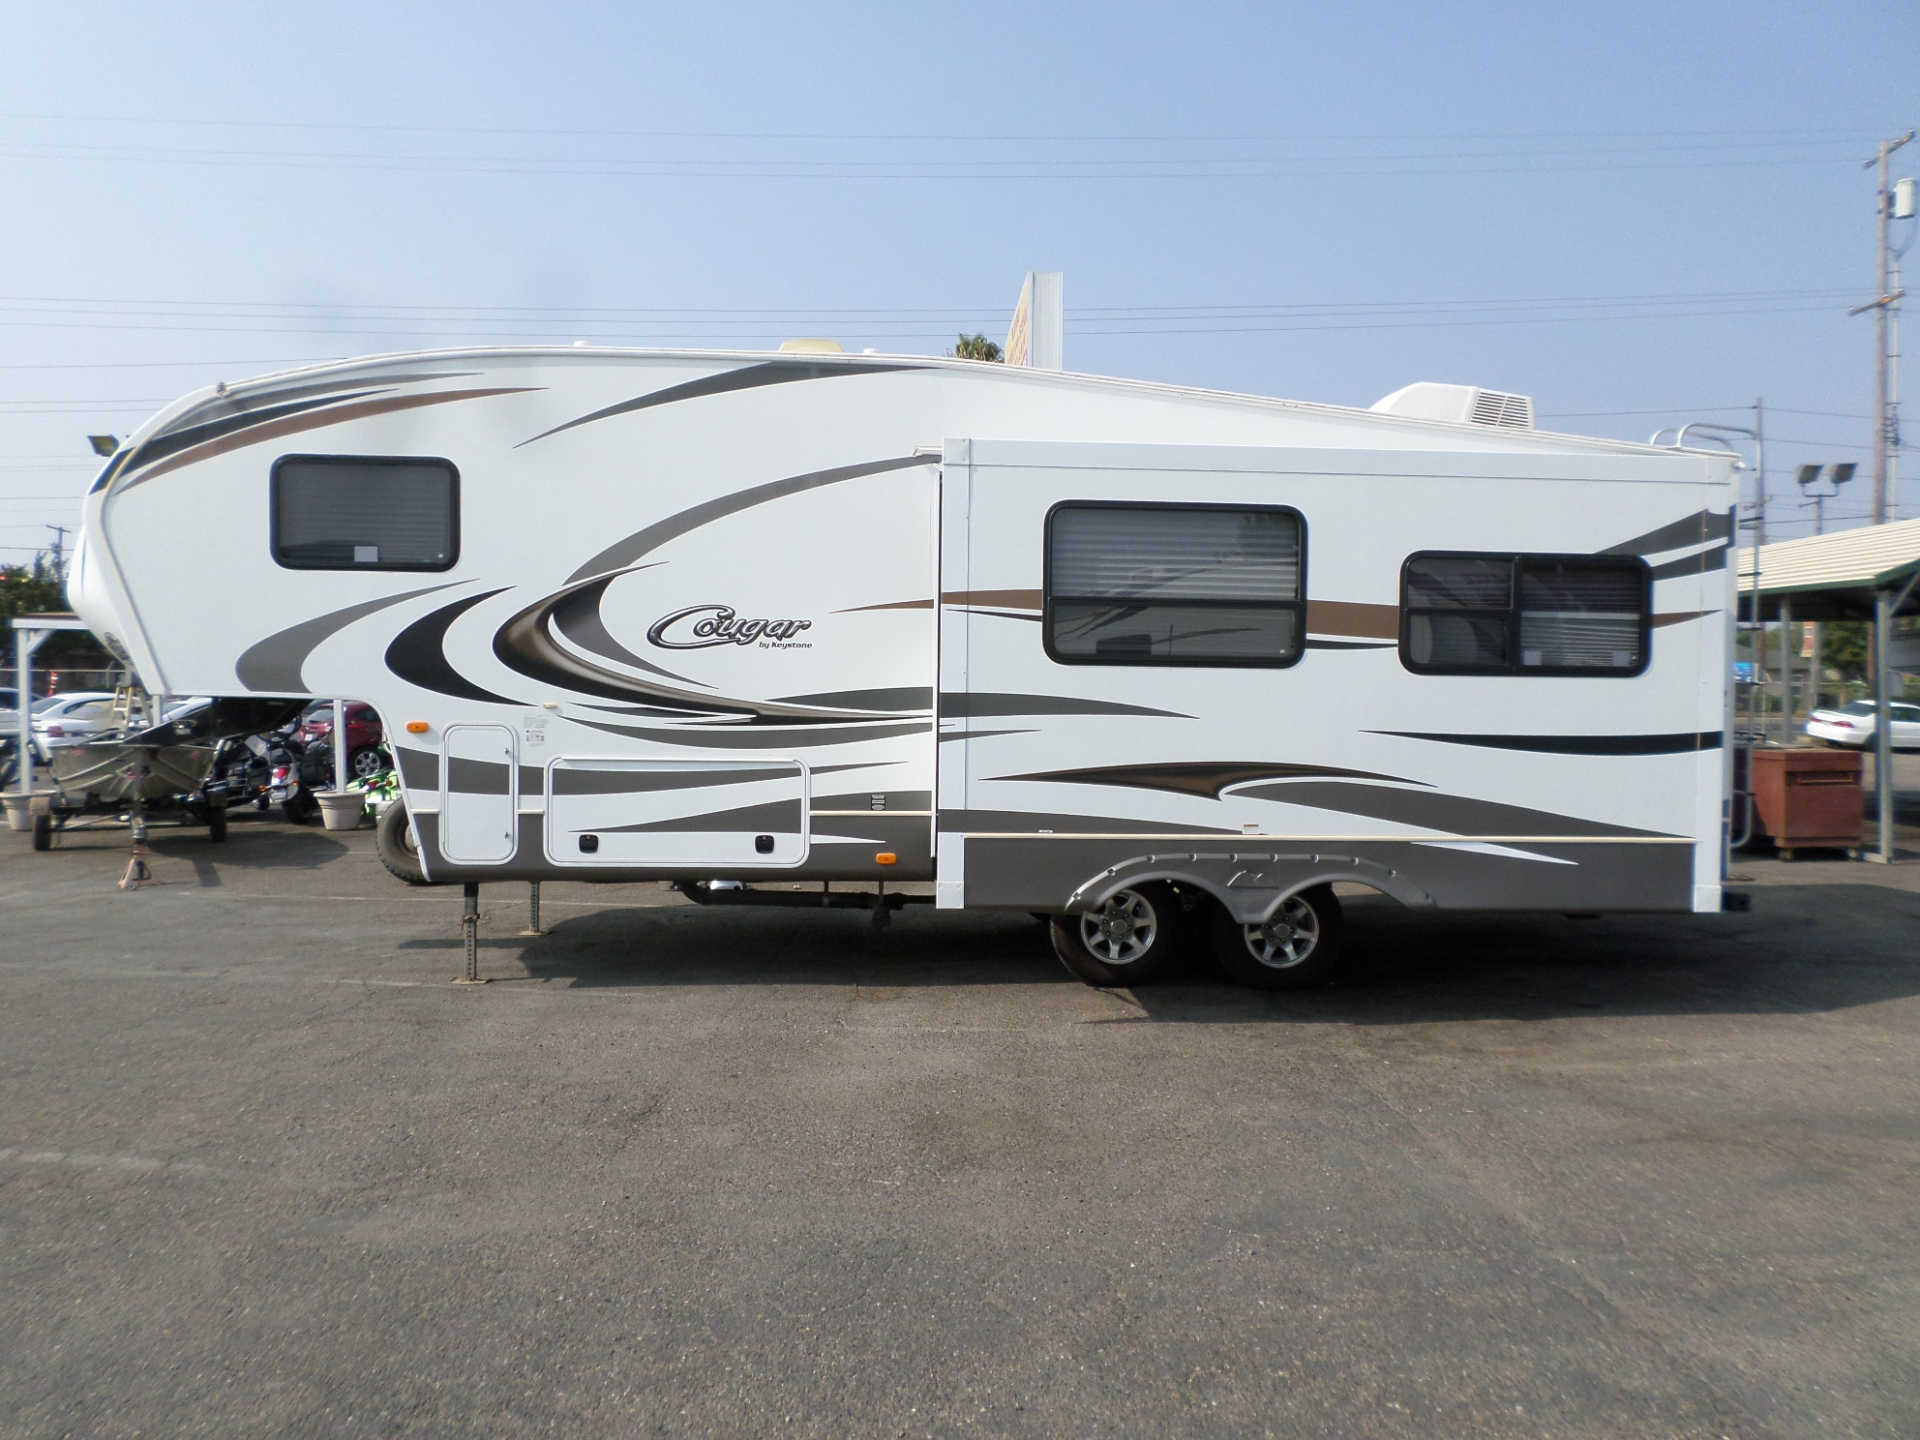 RV For Sale: 2012 Keystone Vizion 3544 Fifth Wheel 36' In